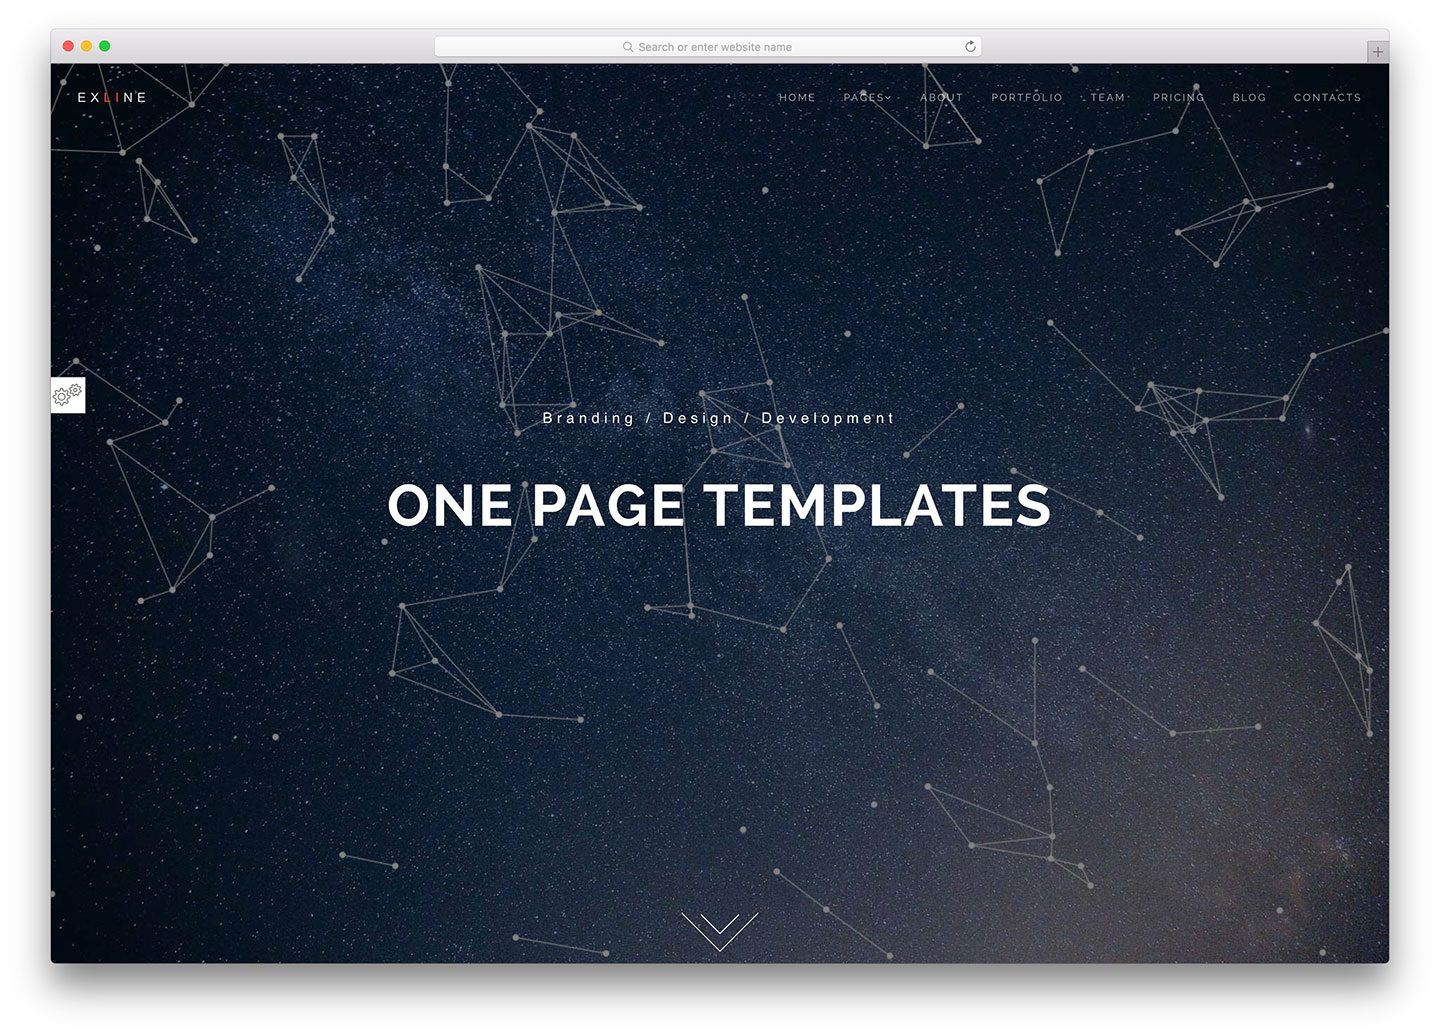 004 Unusual One Page Website Template Free Download Wordpres High Definition  WordpressFull